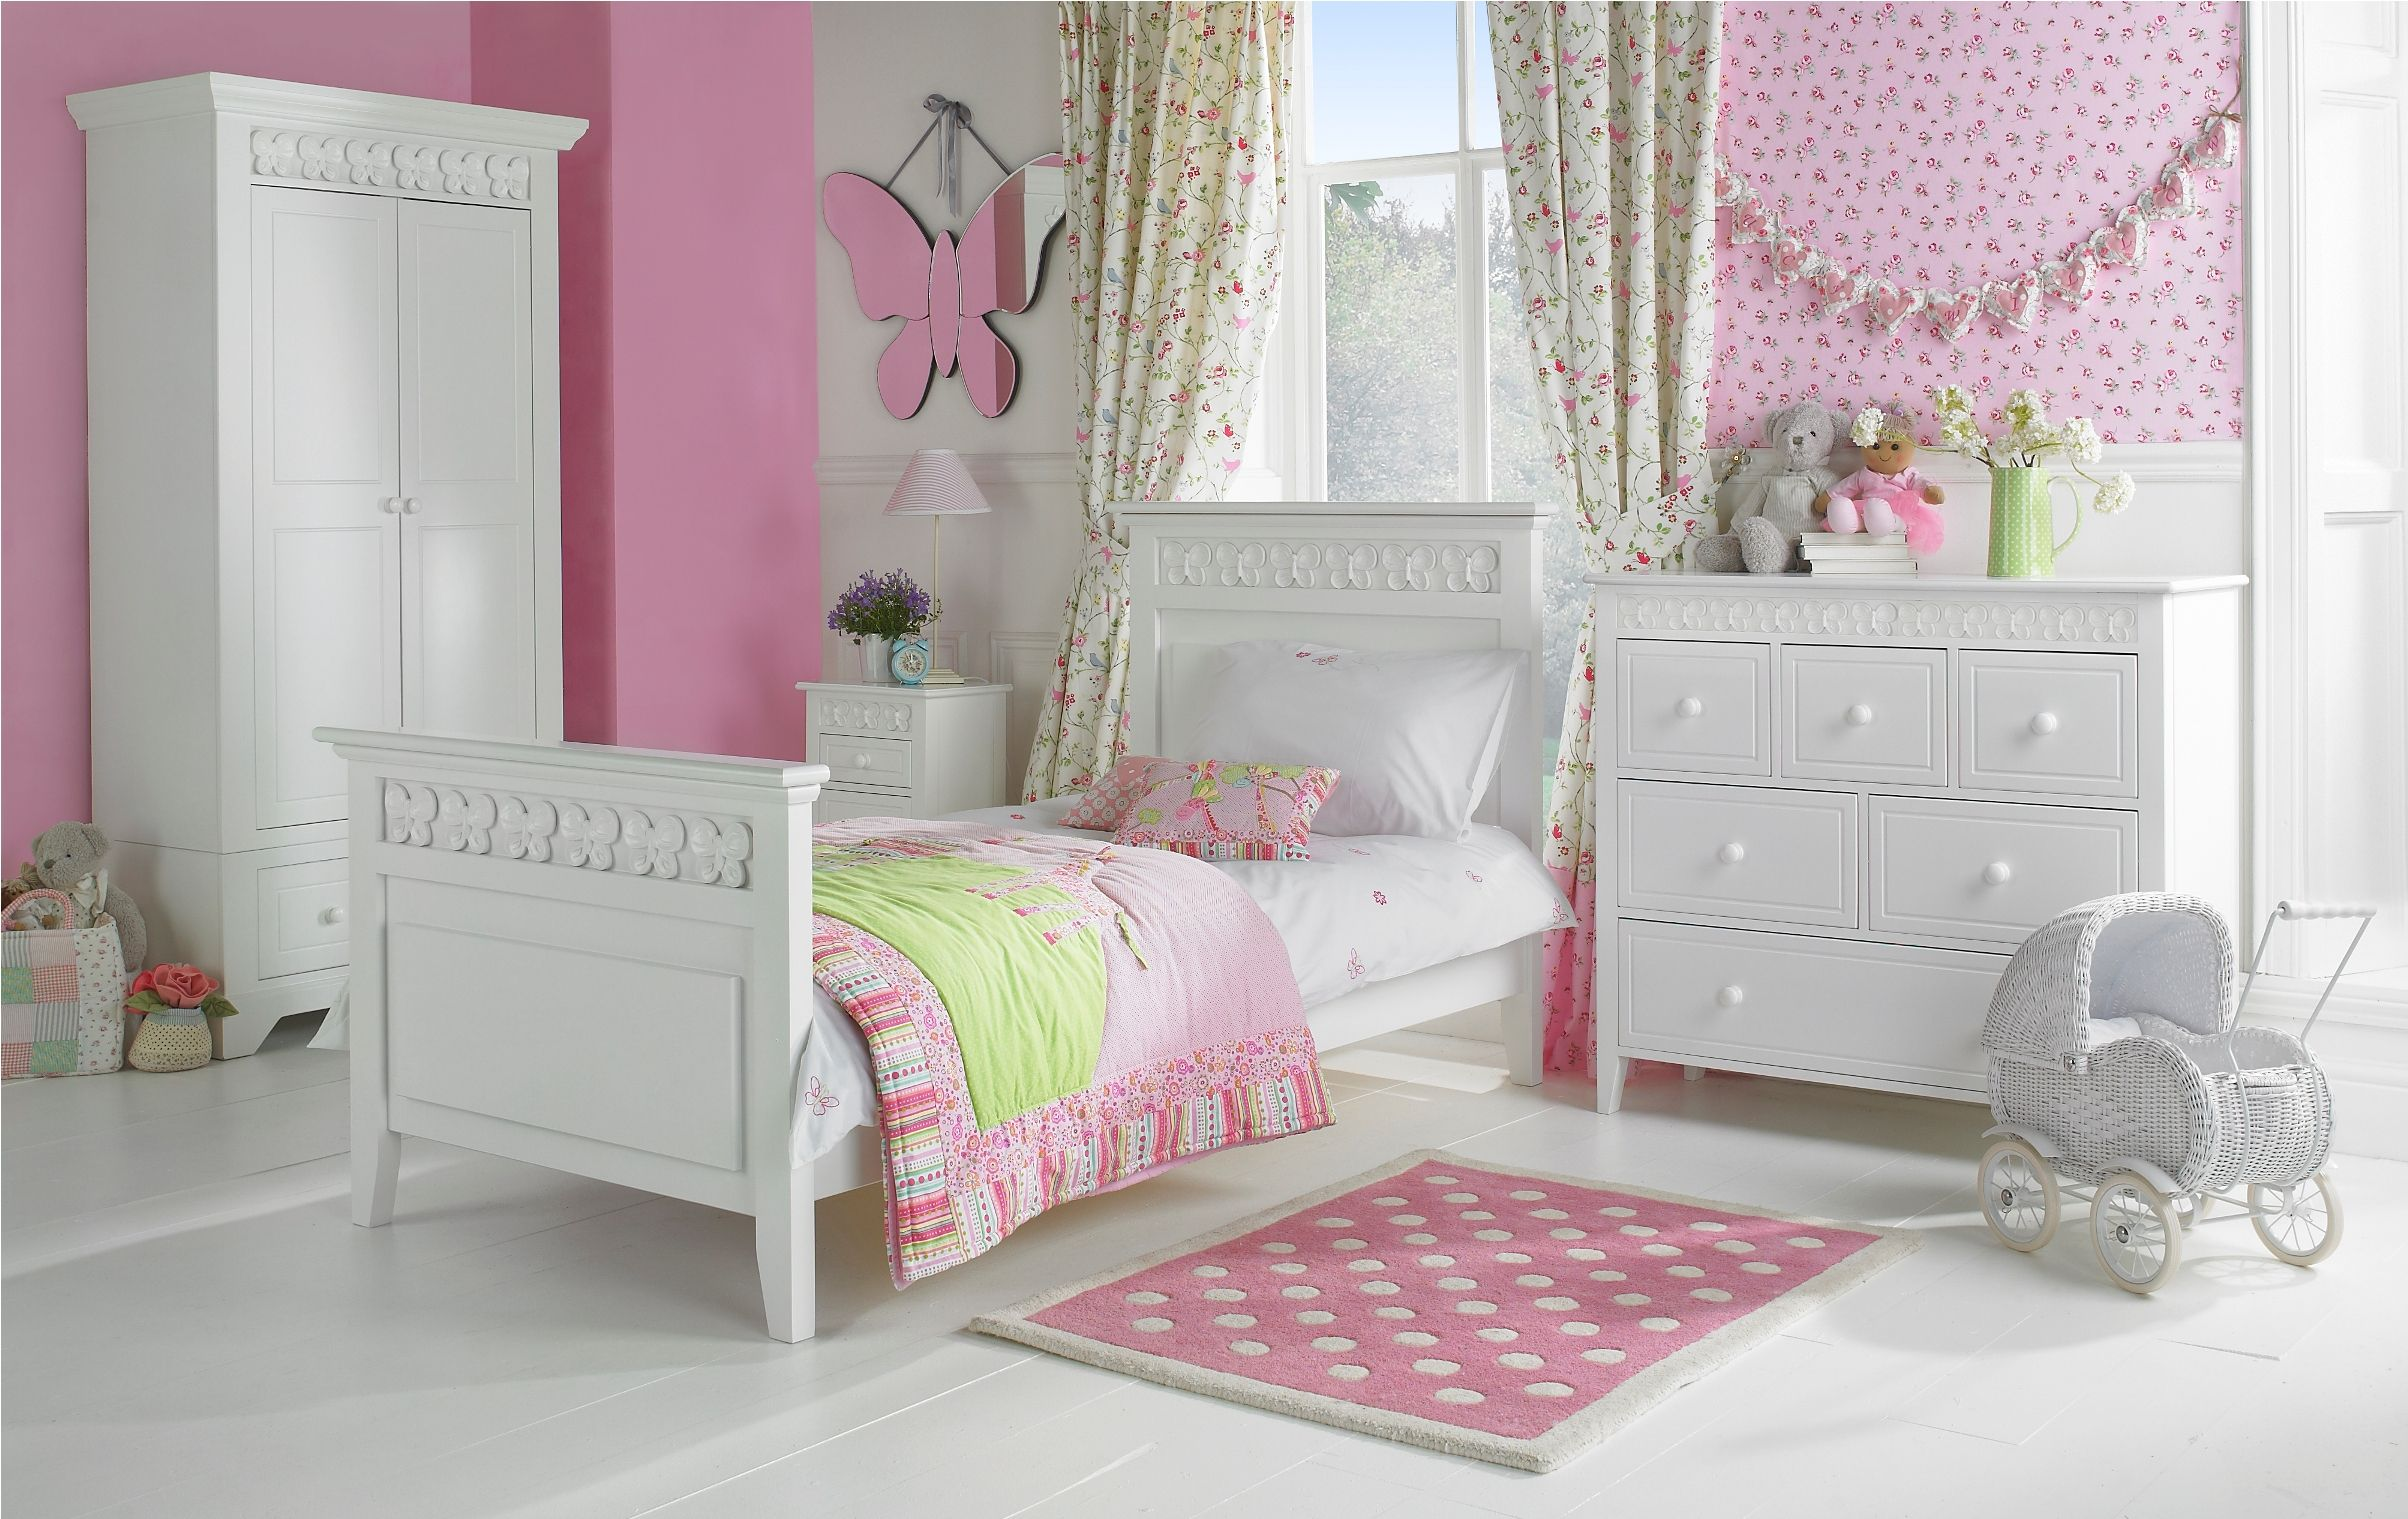 Superb Little Girl Bedroom Furniture White. Brilliant Kids Girls Bedroom Furniture  Sets White Image3 Toddler And